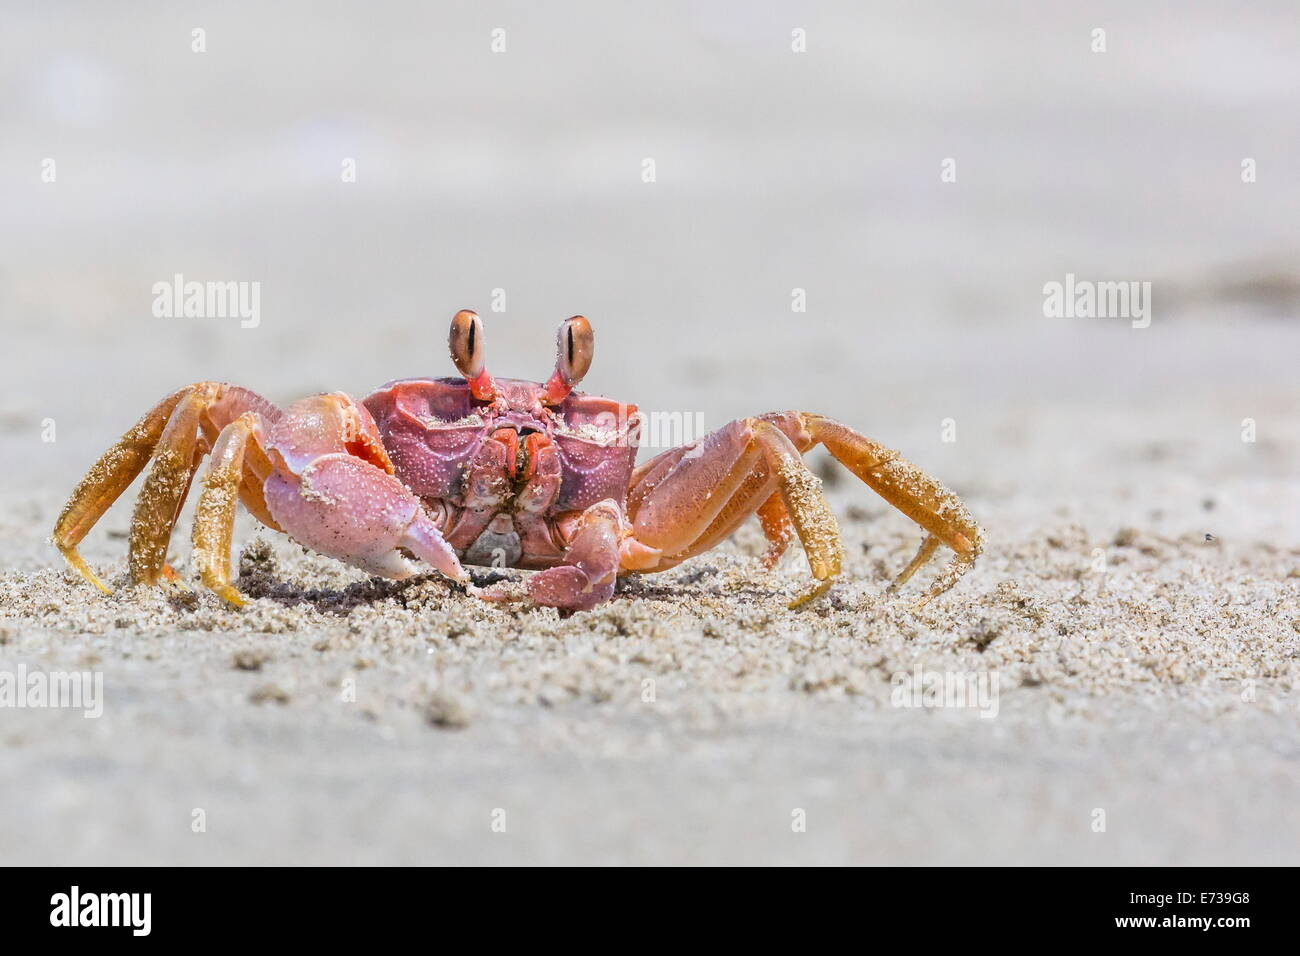 Adult gulf ghost crab (Hoplocypode occidentalis) on Sand Dollar Beach, Magdalena Island, Baja California Sur, Mexico - Stock Image